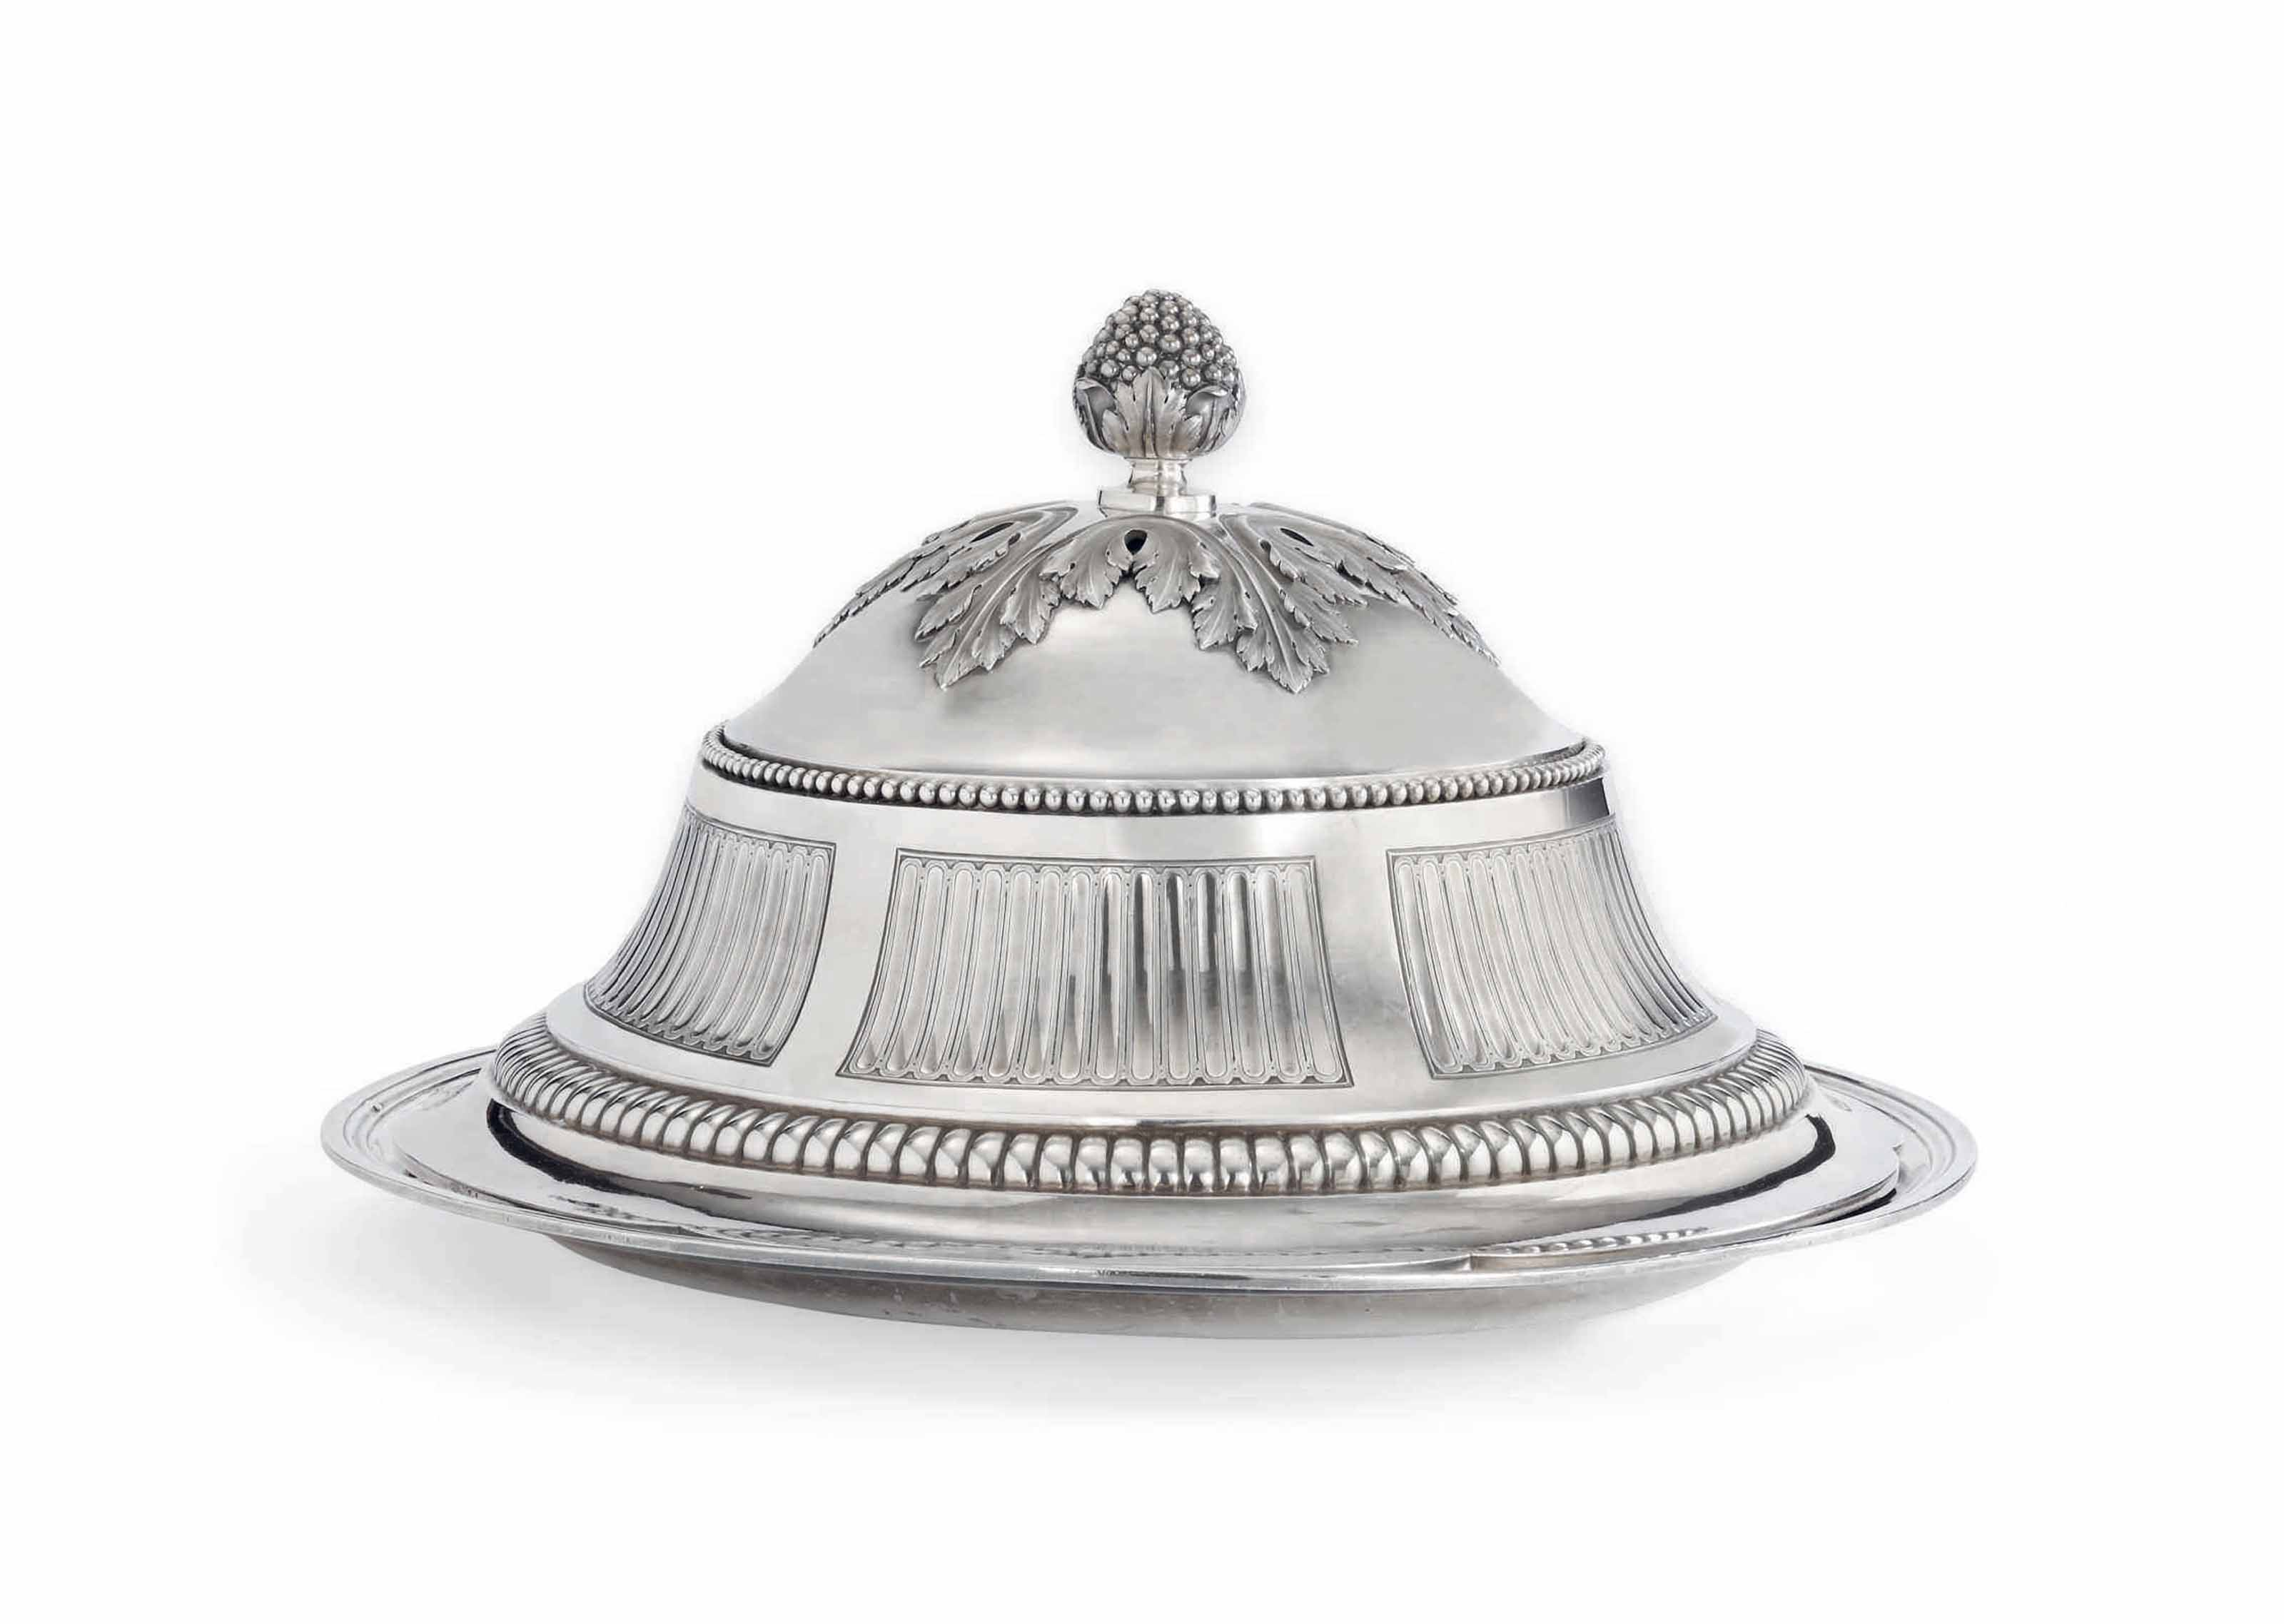 A LOUIS XVI SILVER DISH-COVER AND A RUSSIAN SILVER DISH